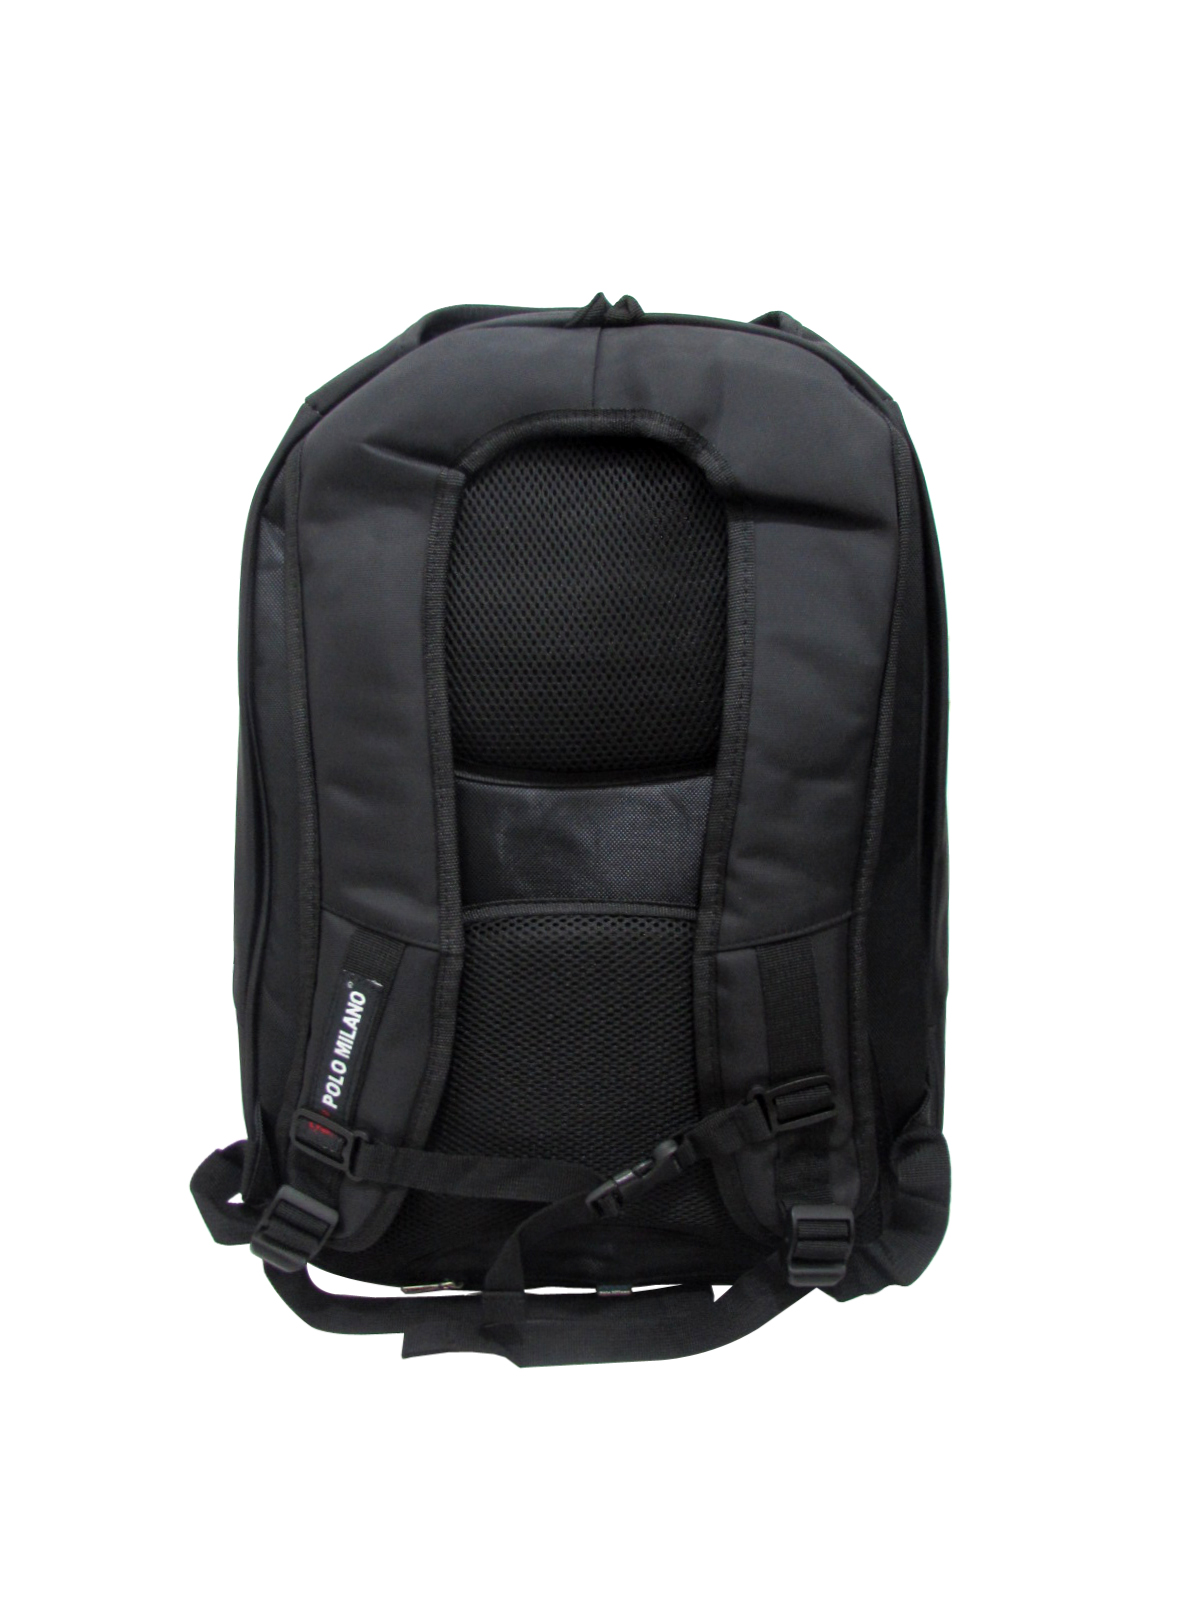 Polo Milano Backpack 88142 Black Expanding Free Rain Cover Ransel Laptop